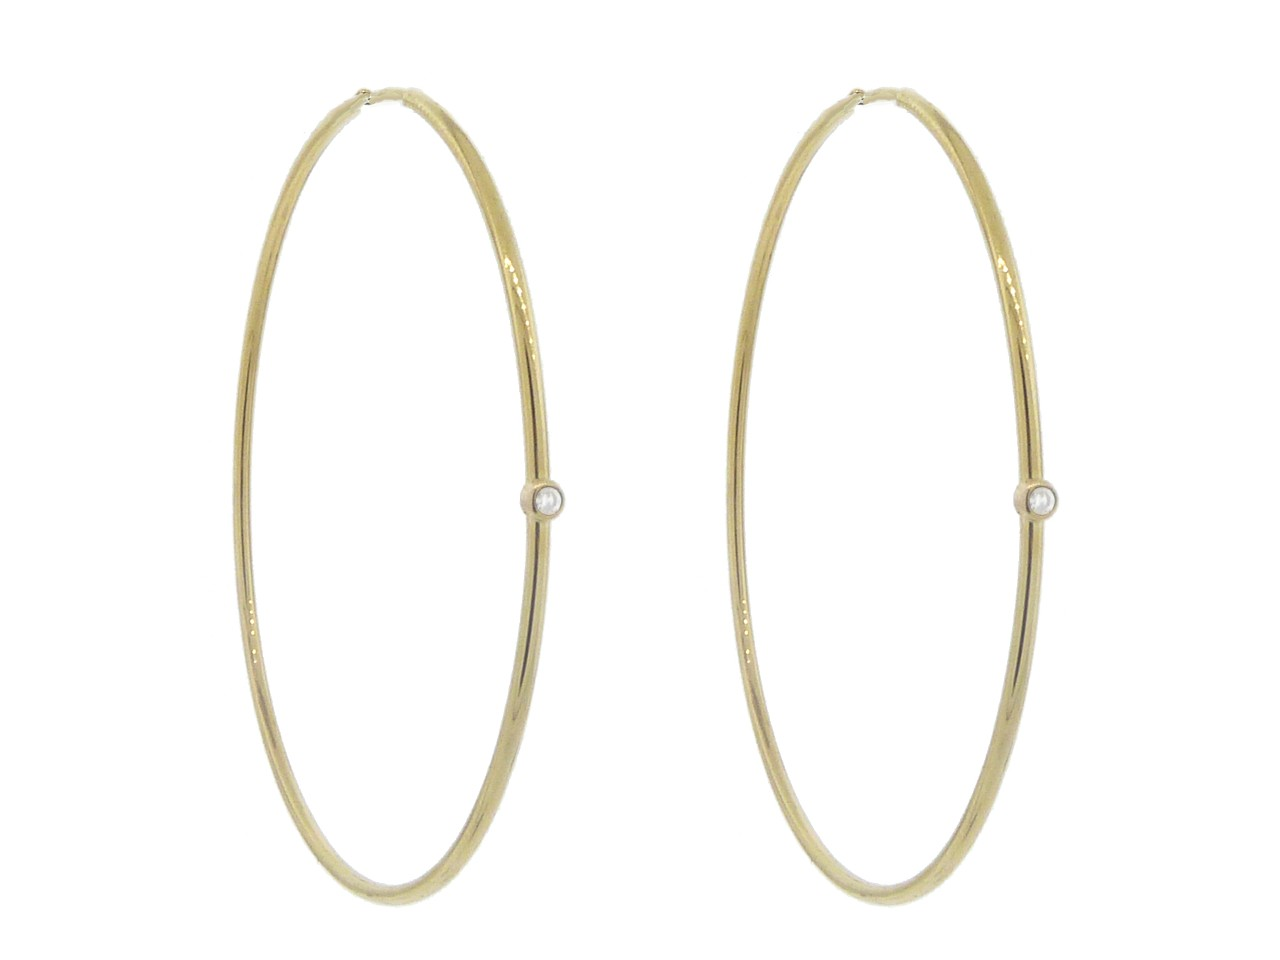 Jennifer Meyer  Medium Hoops with Diamonds   Yellow Gold  YLANG HD Wallpaper